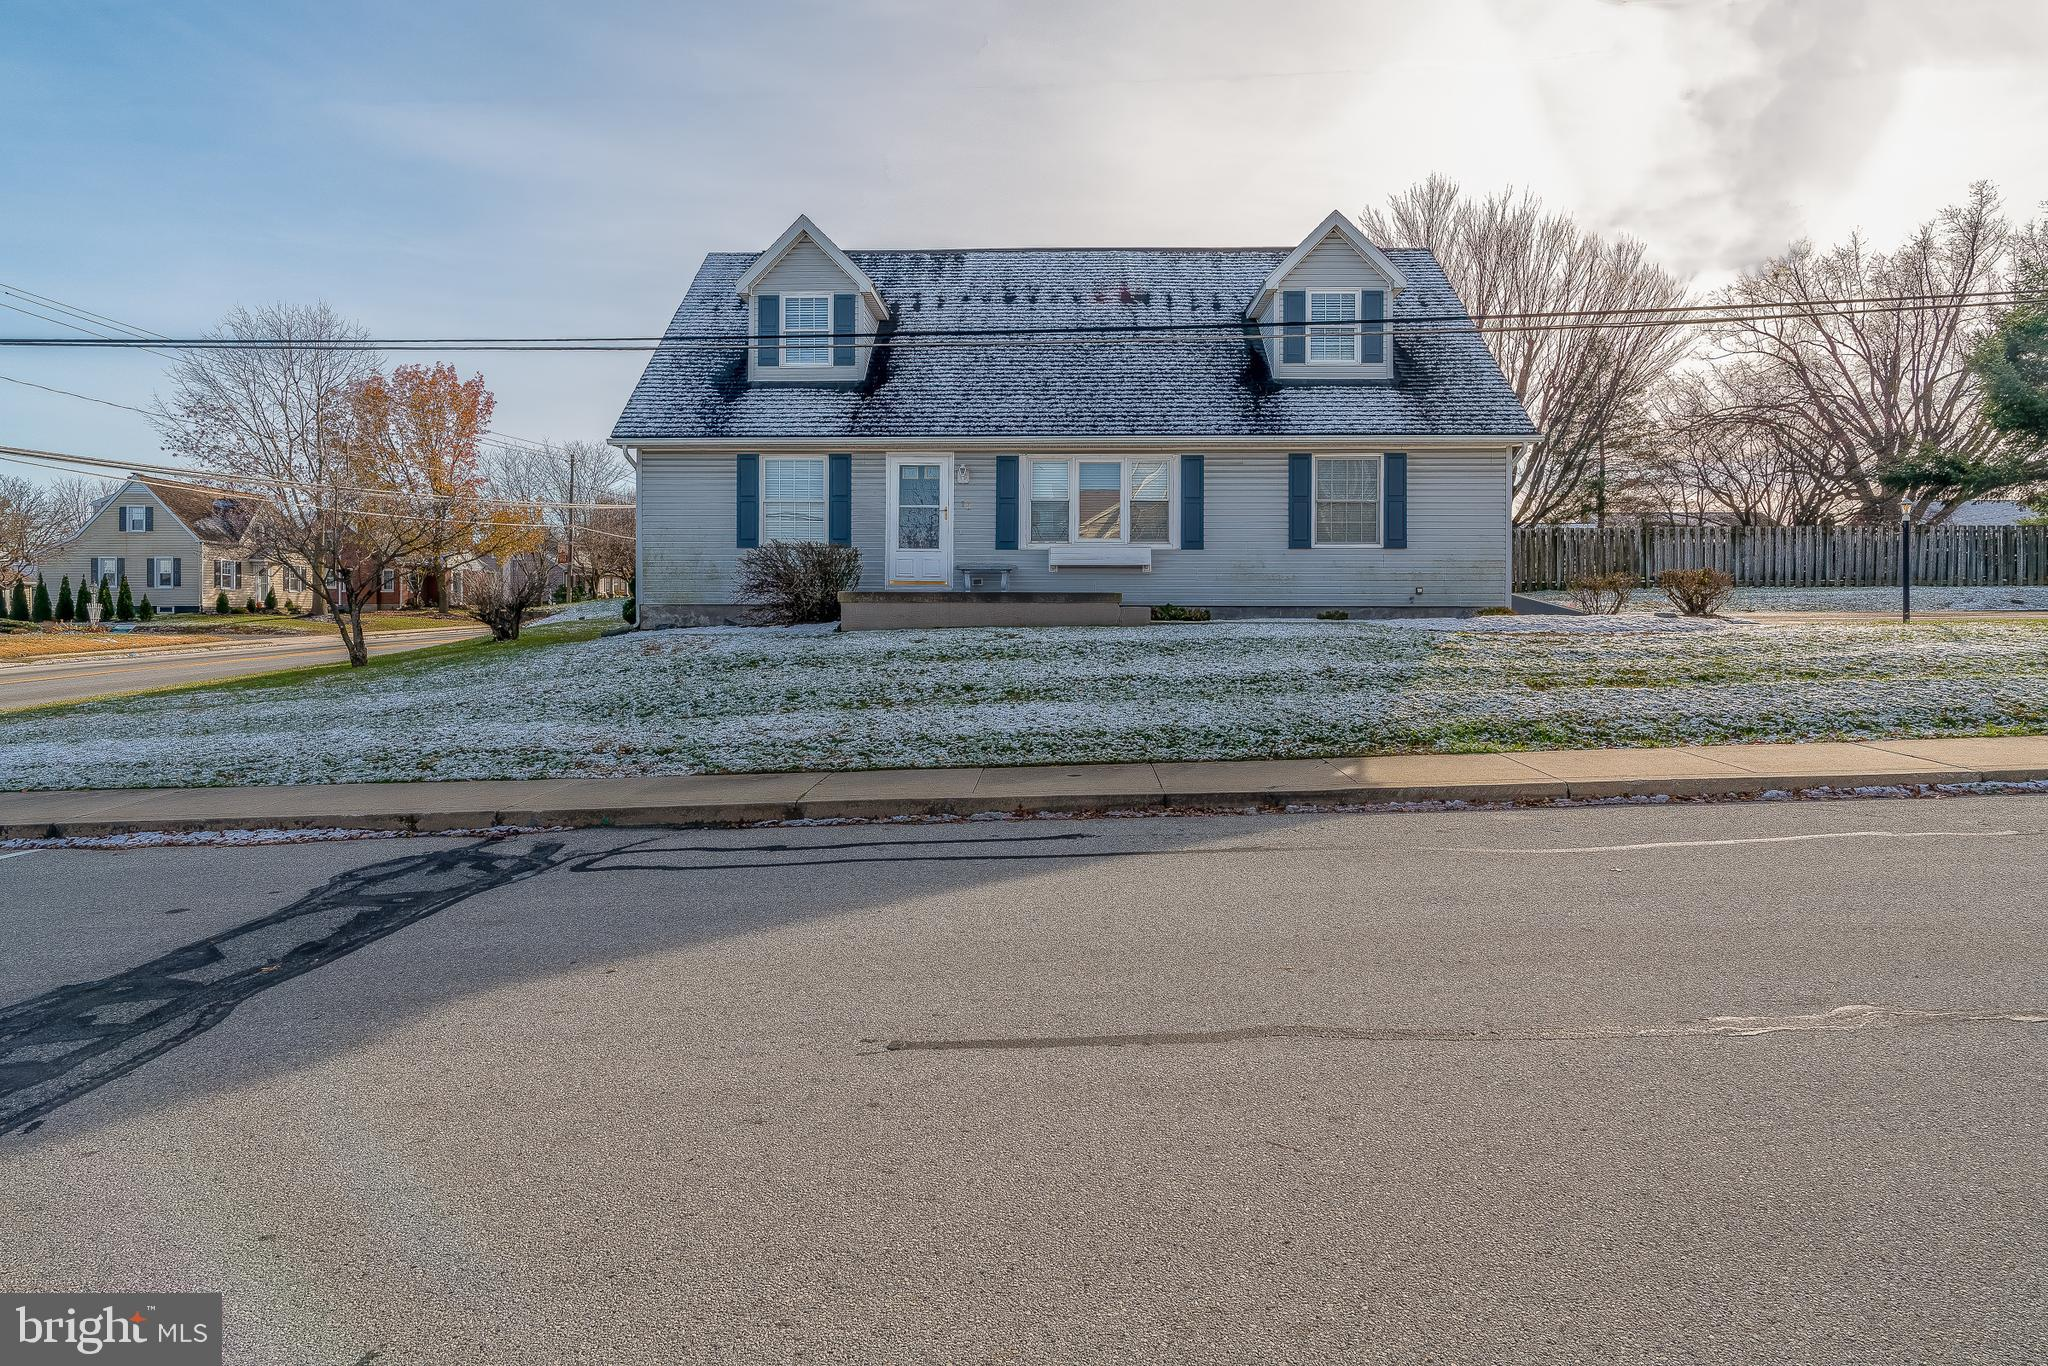 Looking for a  neat and clean, sweet and spacious cape cod in the charming town of Strasburg?  You can walk to the Strasburg Creamery and be there in just a few minutes.  This home is ready for you and features 4 nicely sized bedrooms (2 on the first floor and 2 on the second floor), gleaming wood laminate floors and a spacious kitchen with white cabinets,  granite countertops and stainless steel appliances.  The pantry has a wonderful organizational system and there are pull-out drawers.   The side entrance door has a self-storing screen inside.  The laundry is conveniently located on the first floor with washer and dryer included.  Huge first-floor primary bedroom with 2 large closets.  All appliances are only a few years old and are included for the new owner.  Water heater, HVAC new in 2016. Plenty of parking in the oversized driveway and a cute shed to store your lawn equipment in.   Make this your next Home Sweet Home today and get ready to call 10 Washington Street, Strasburg your new address for the New Year!